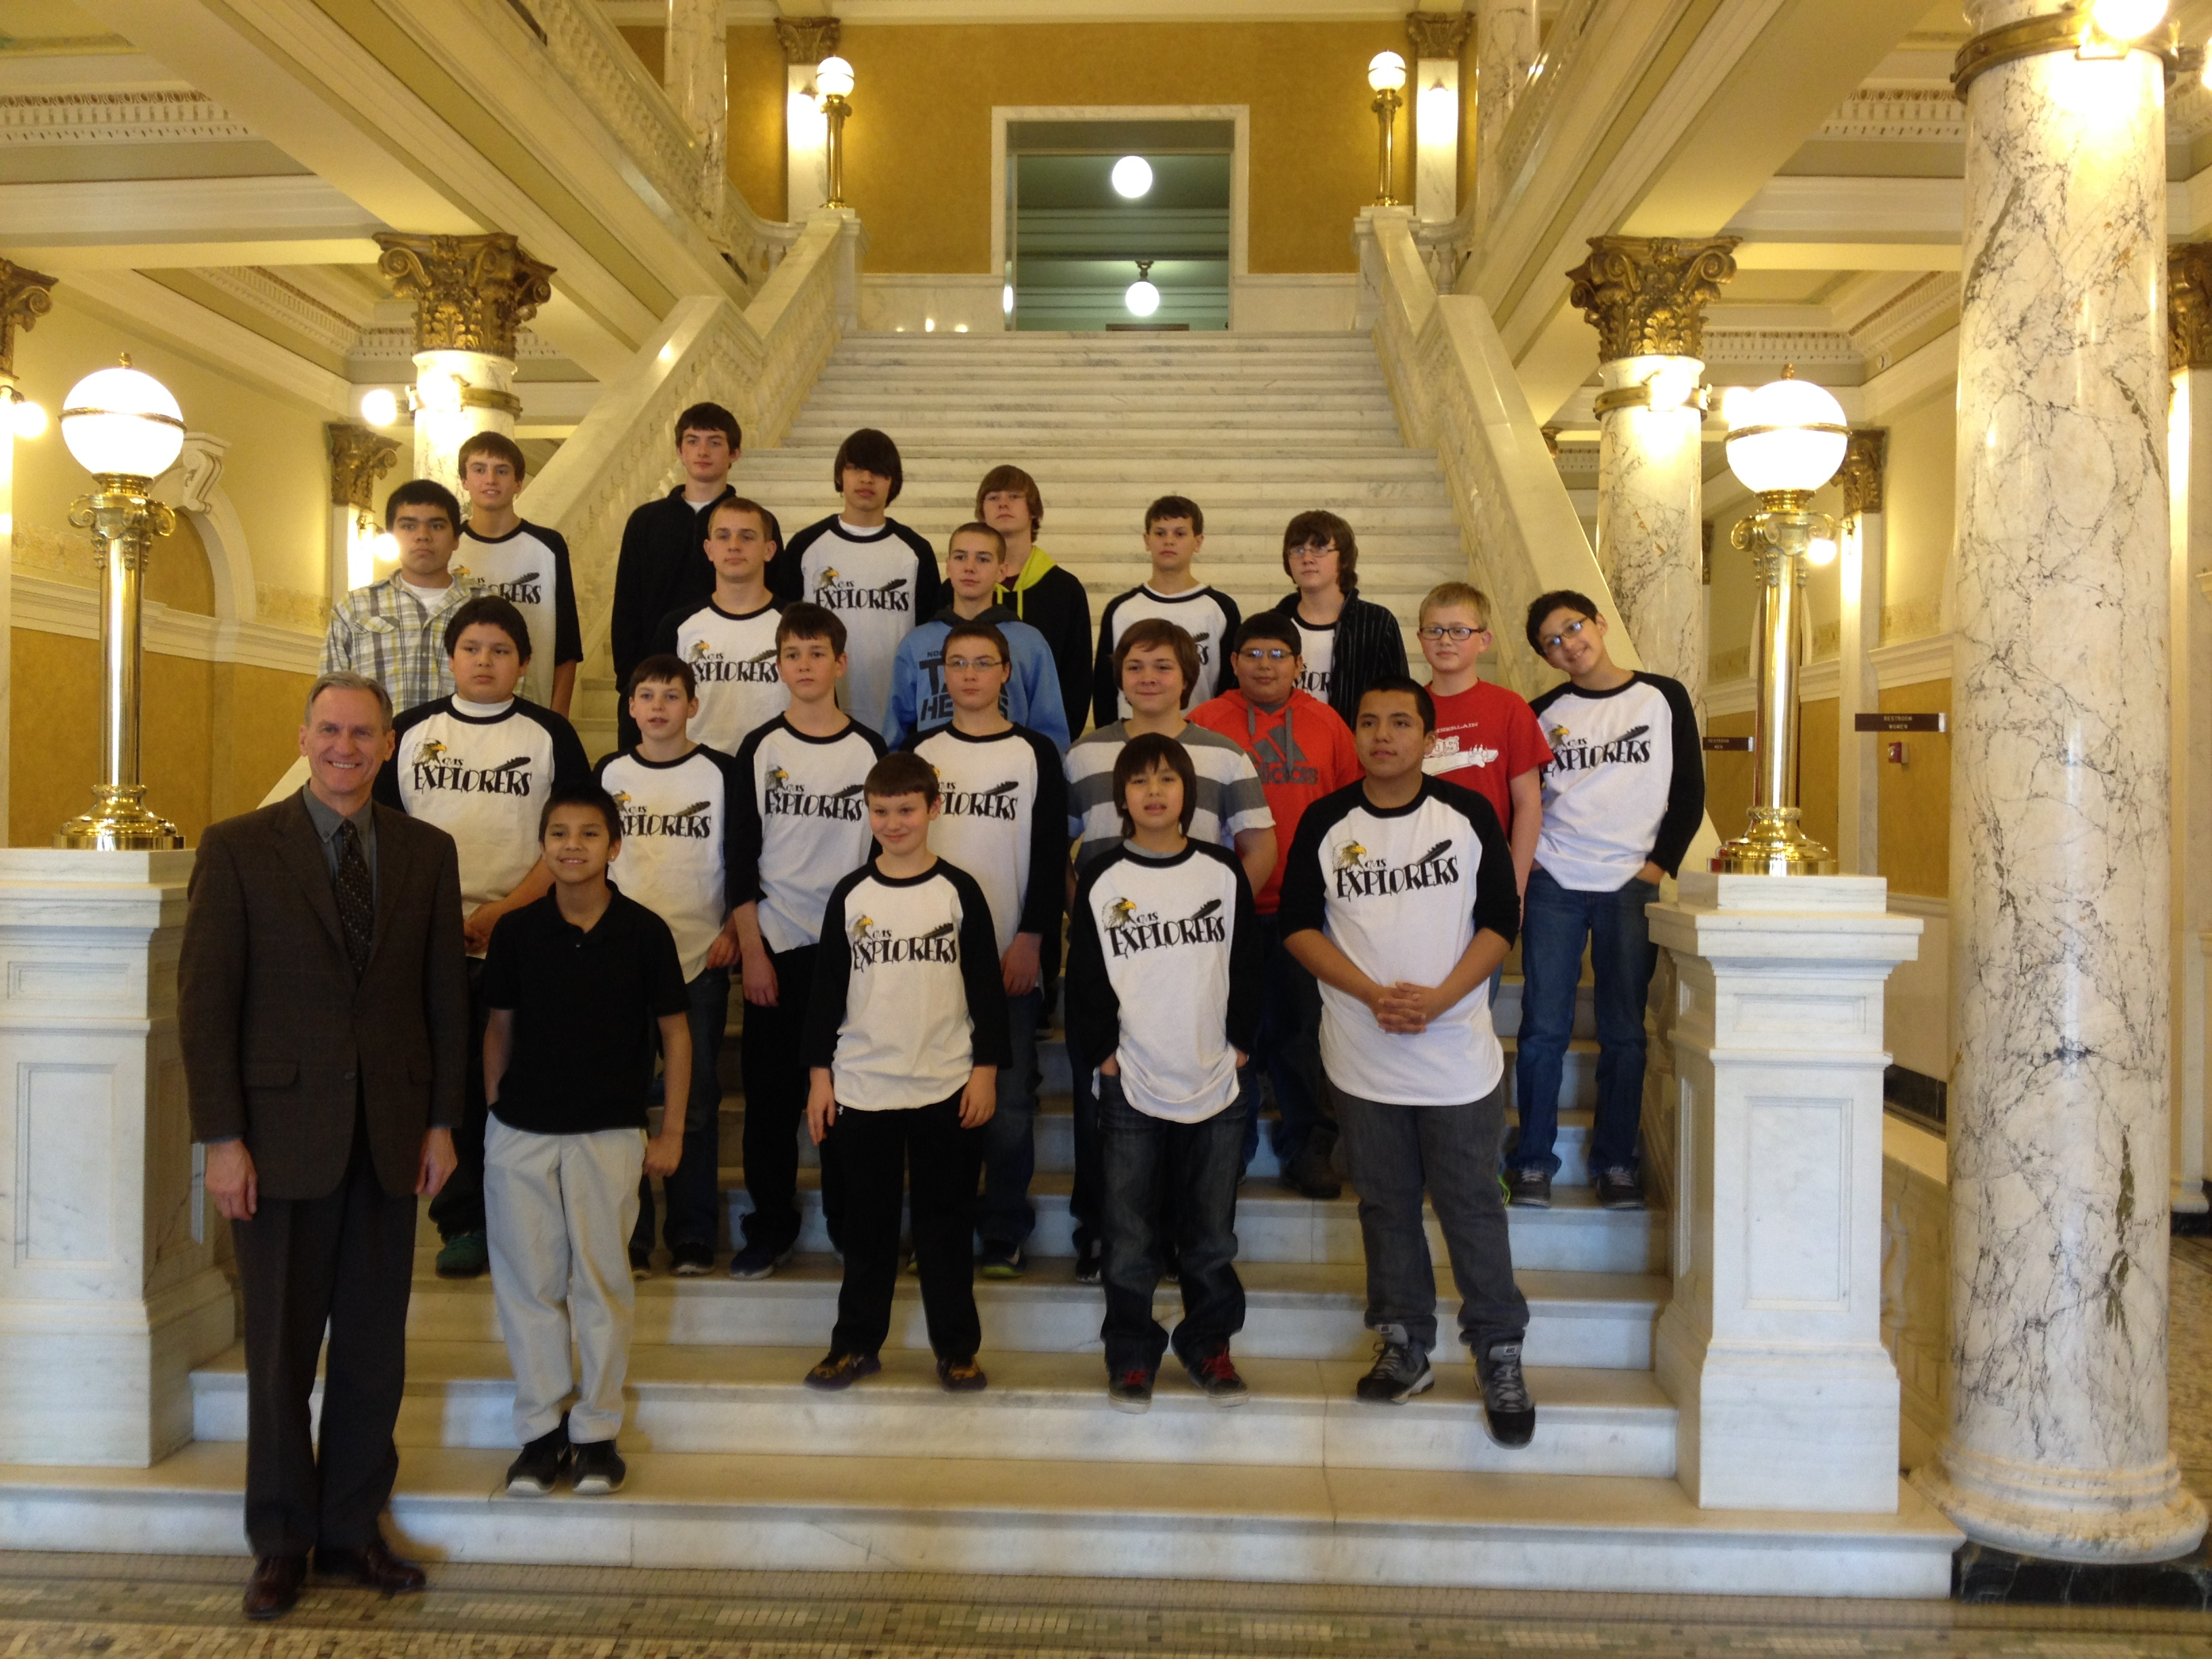 The Explorers got to meet South Dakota Governor Dennis Daugaard.